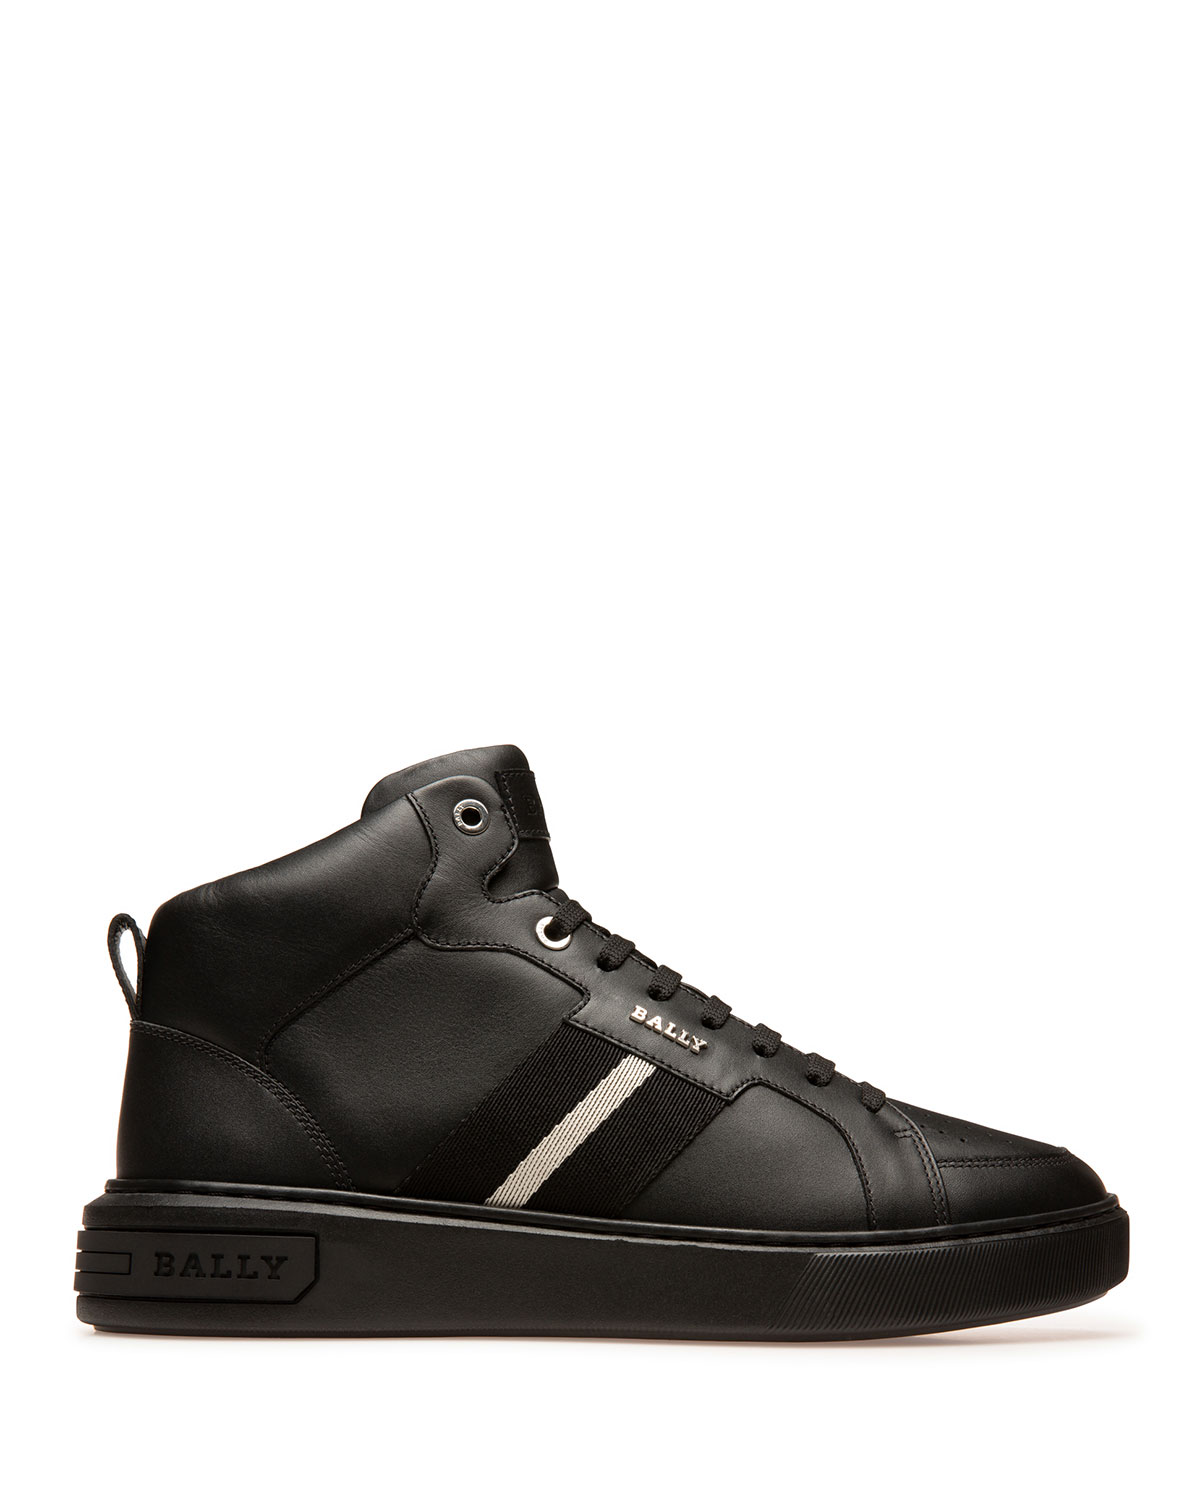 Bally MEN'S MYLES TRAINSPOTTING LEATHER HIGH-TOP SNEAKERS